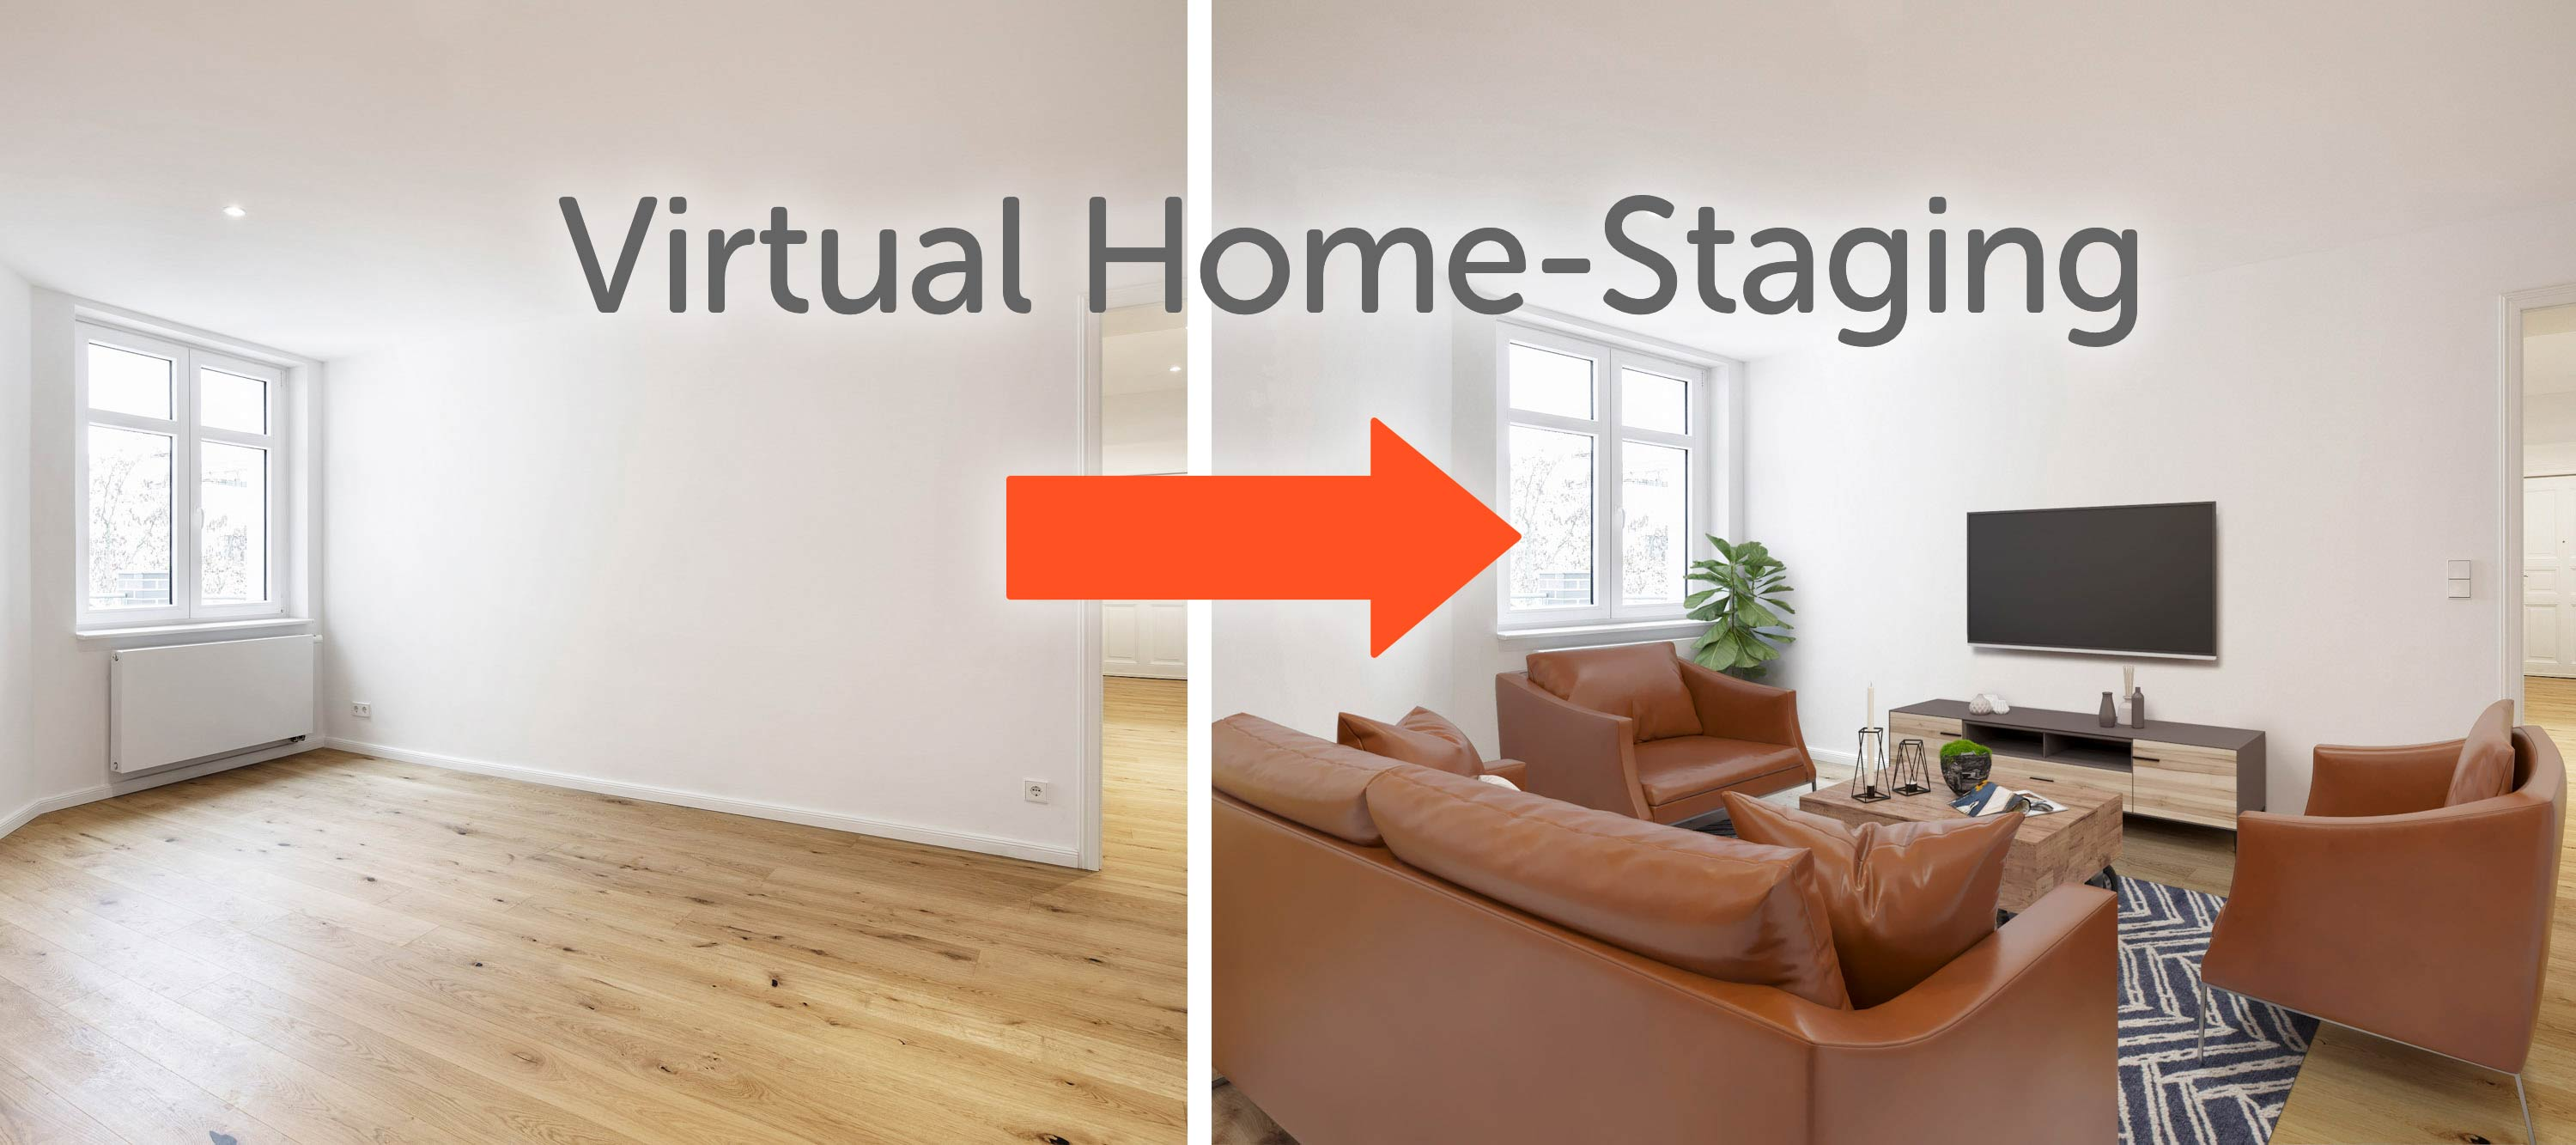 Virtual Home-Staging © Offenblende